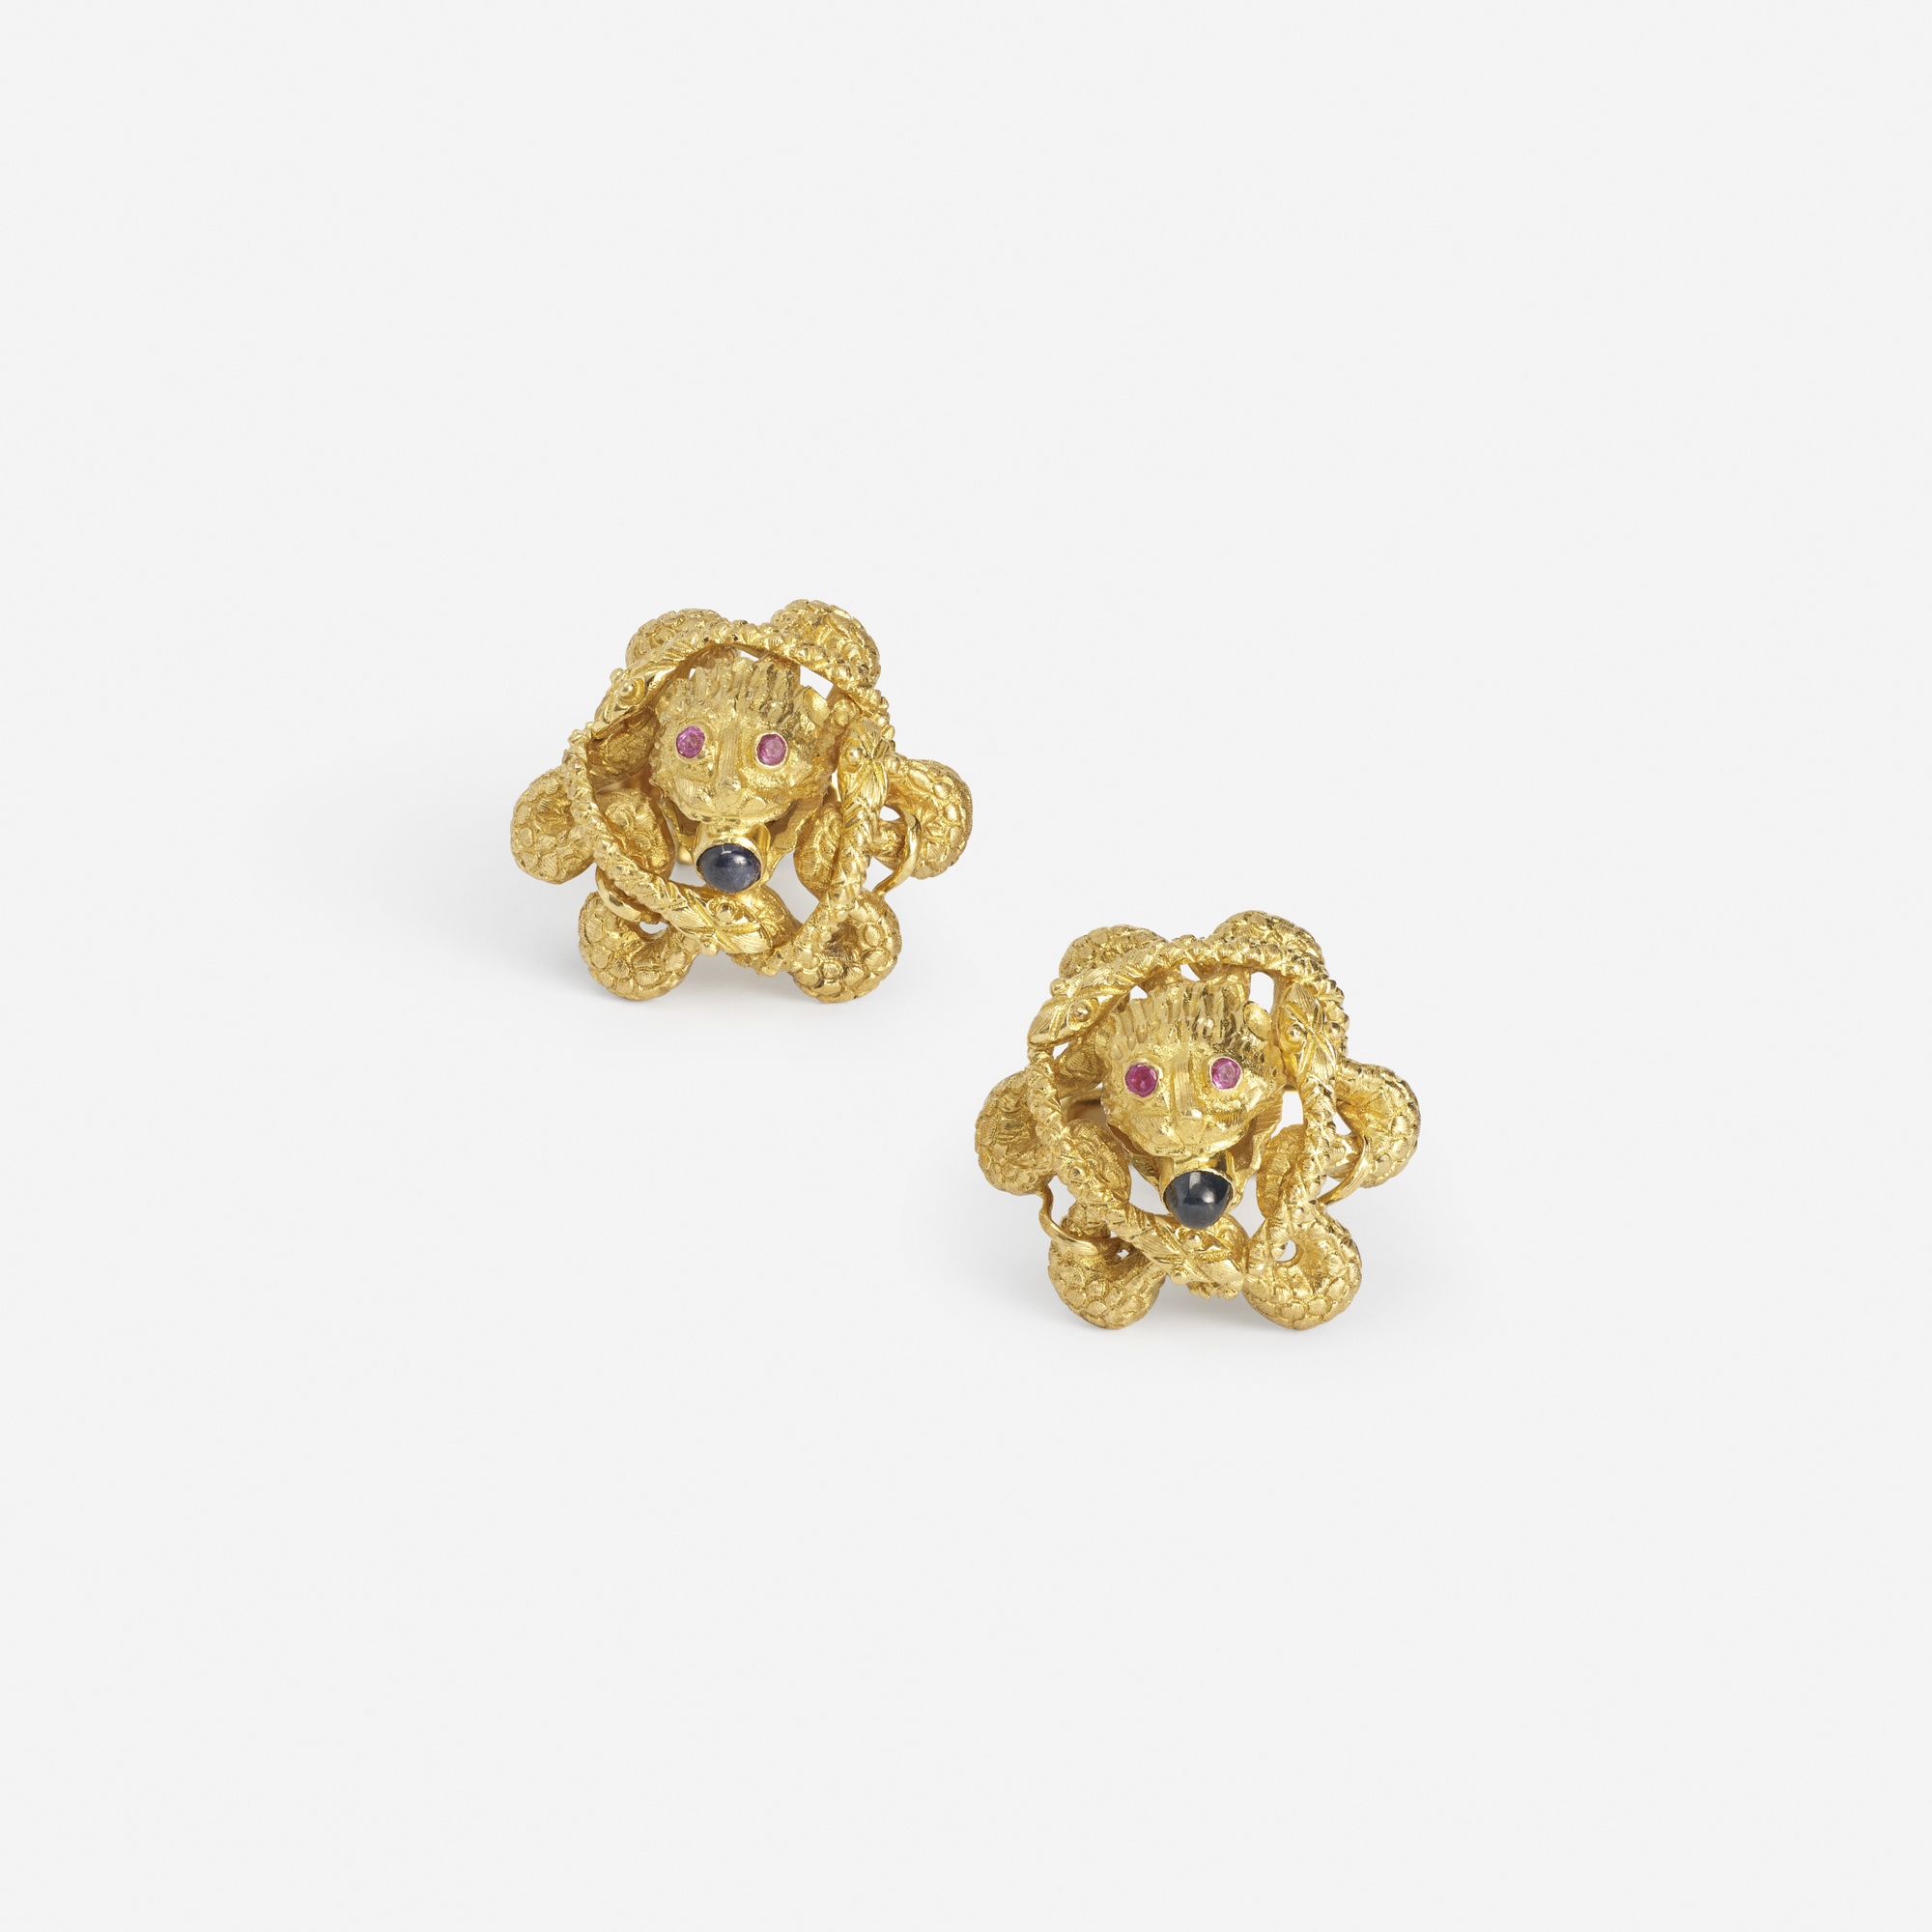 250: Lalaounis / A pair of gold, ruby and sapphire cufflinks (1 of 2)